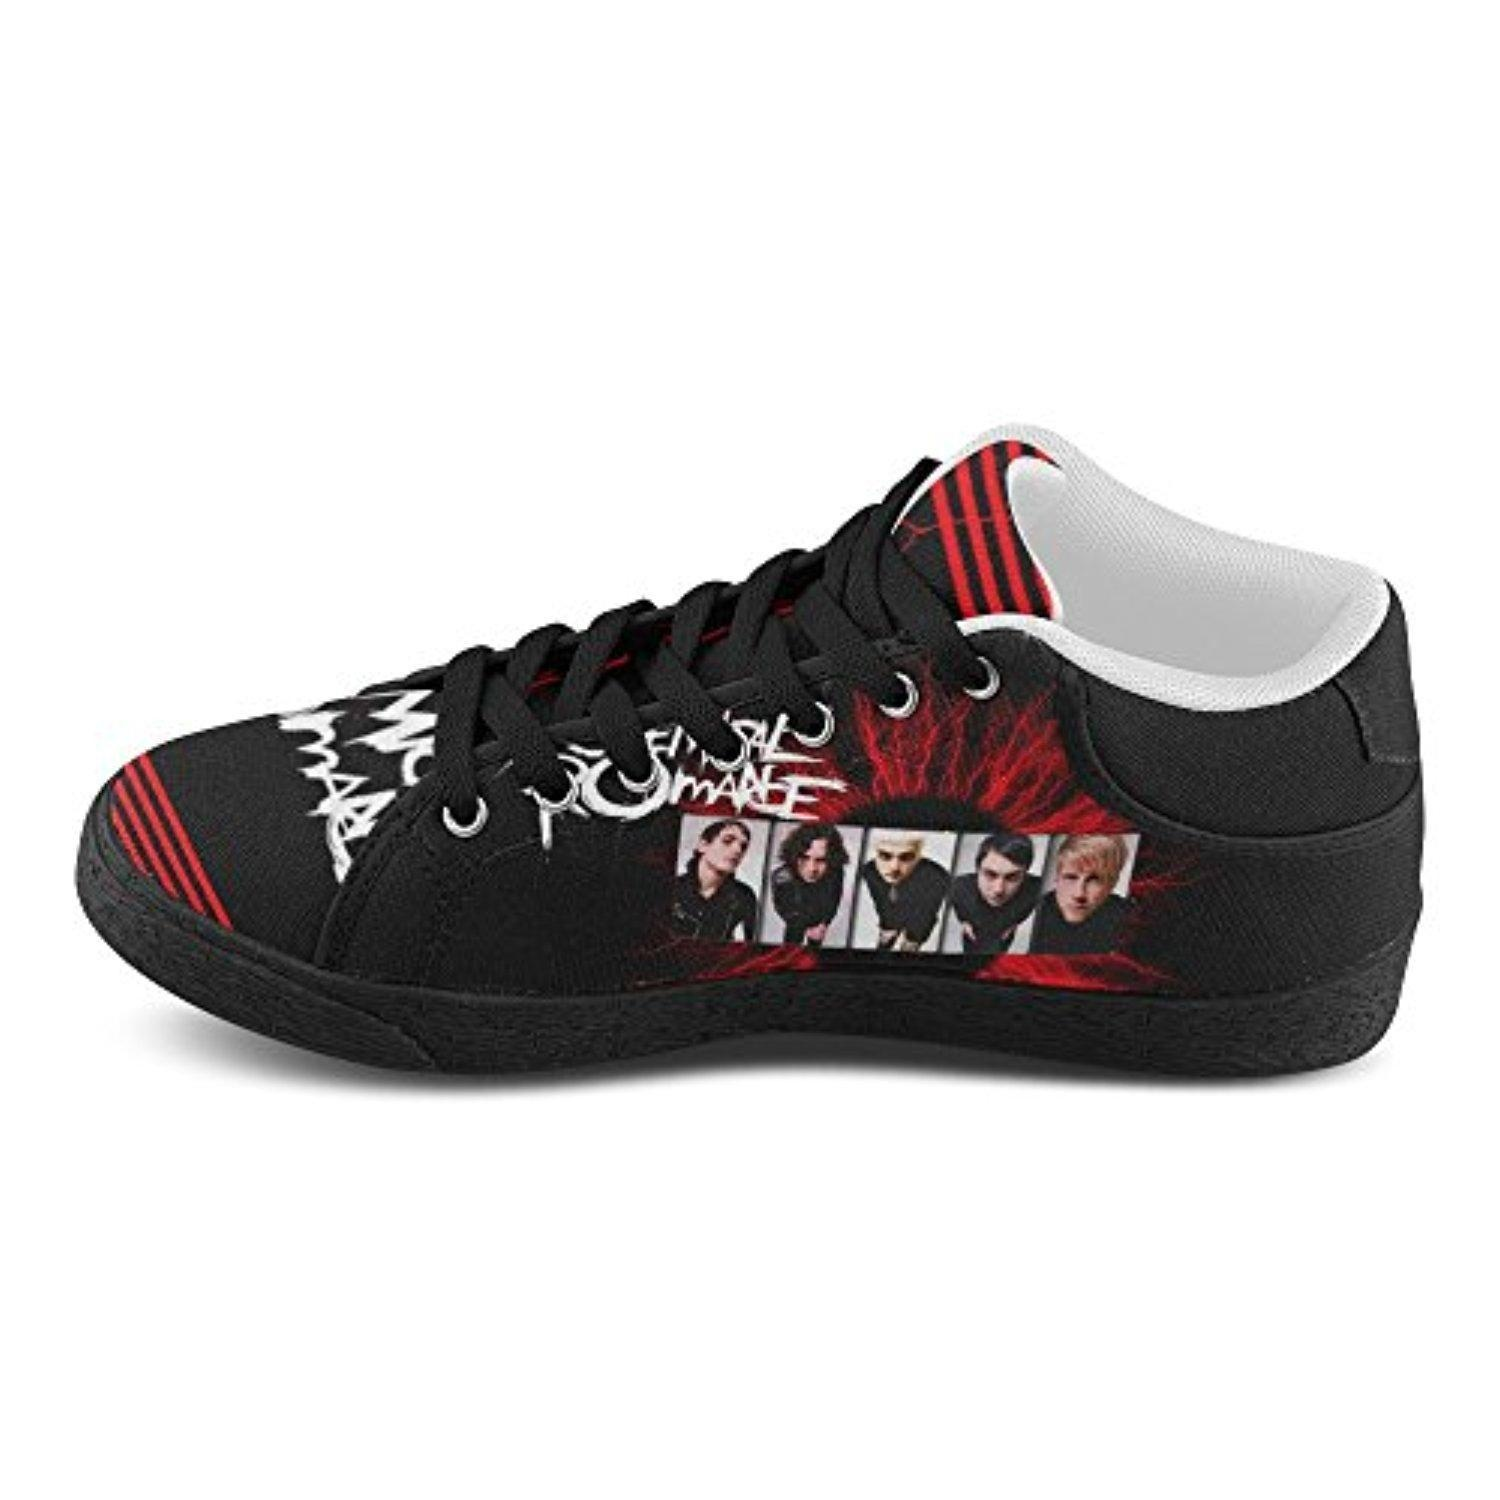 H-ome Art My Chemical Romance Women's Chukka Lace-Up Canvas Shoes Running Sneakers ,Black